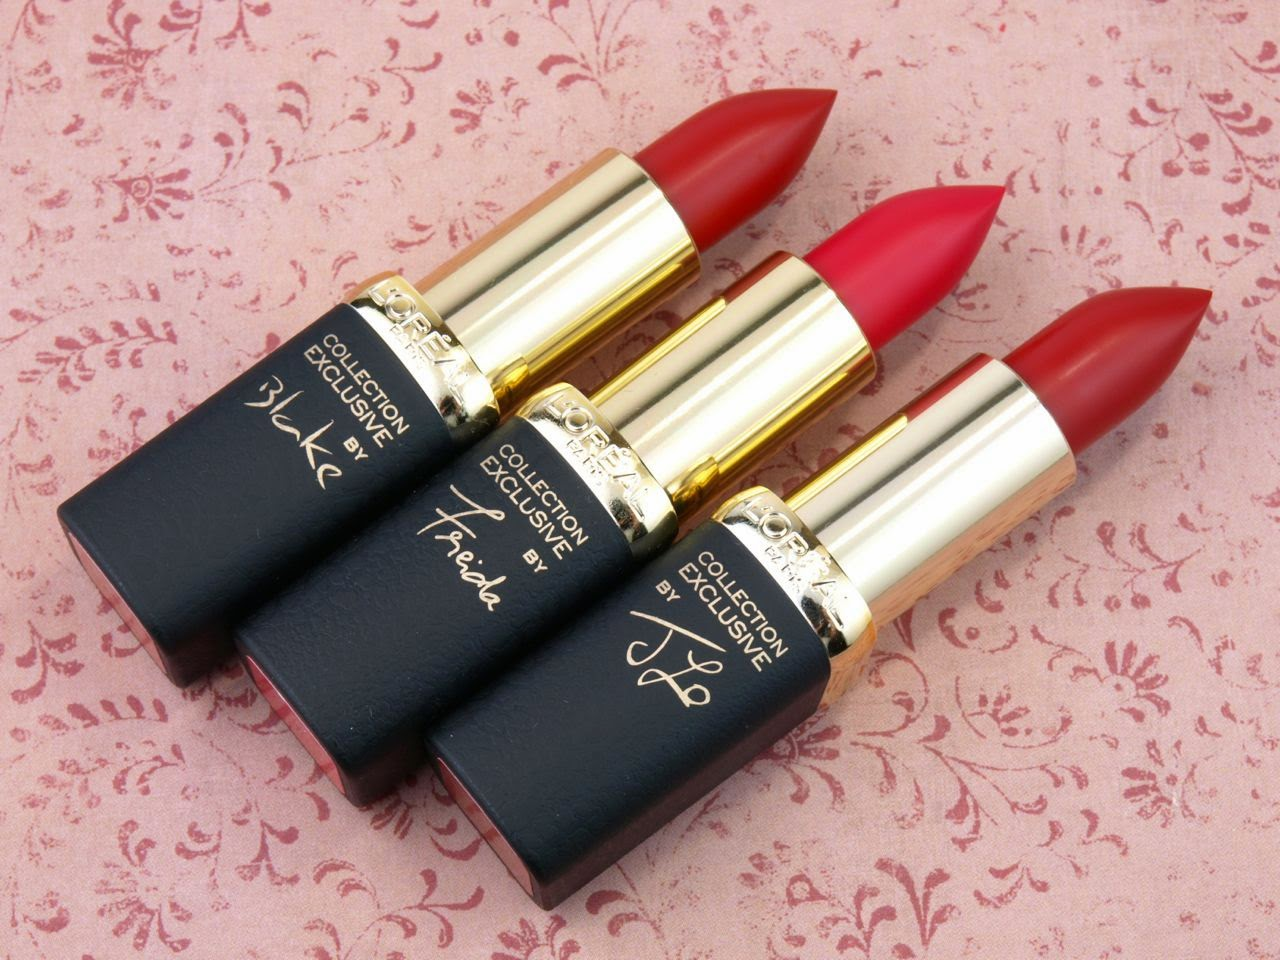 L'Oreal Collection Exclusive Pure Reds by Color Riche Lipsticks: Review and Swatches